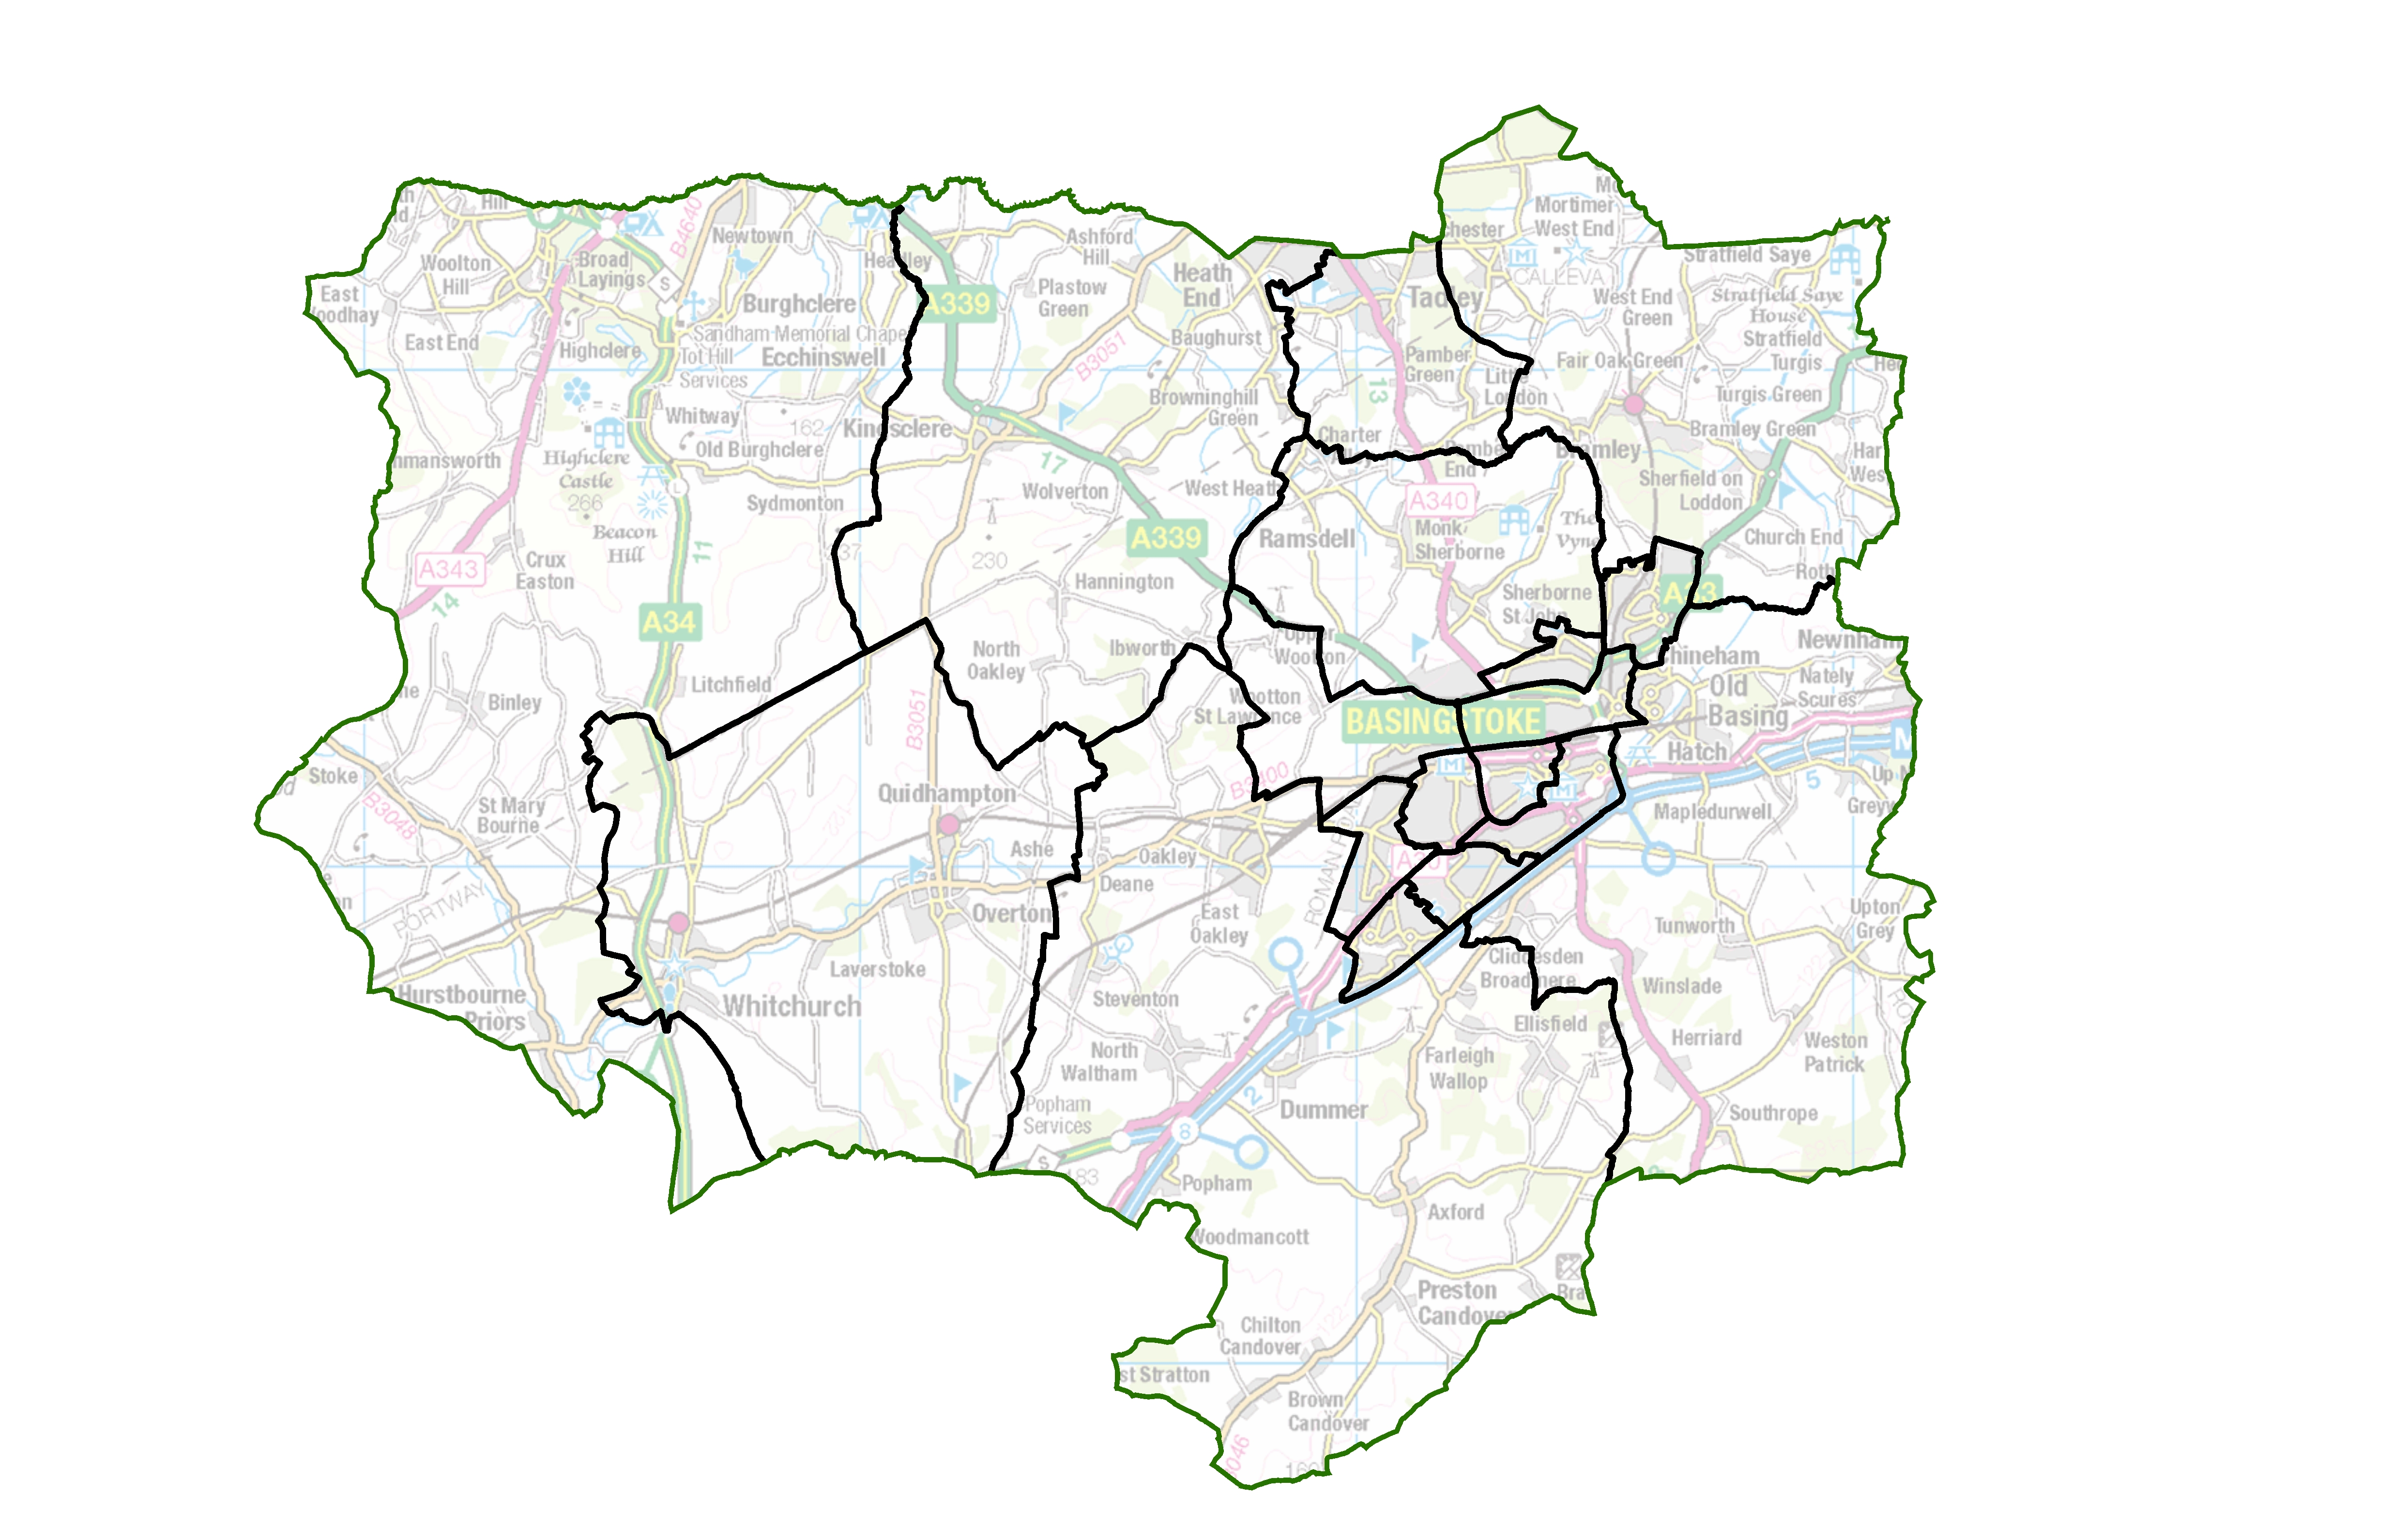 Final recommendations map for Basingstoke and Deane Borough Council